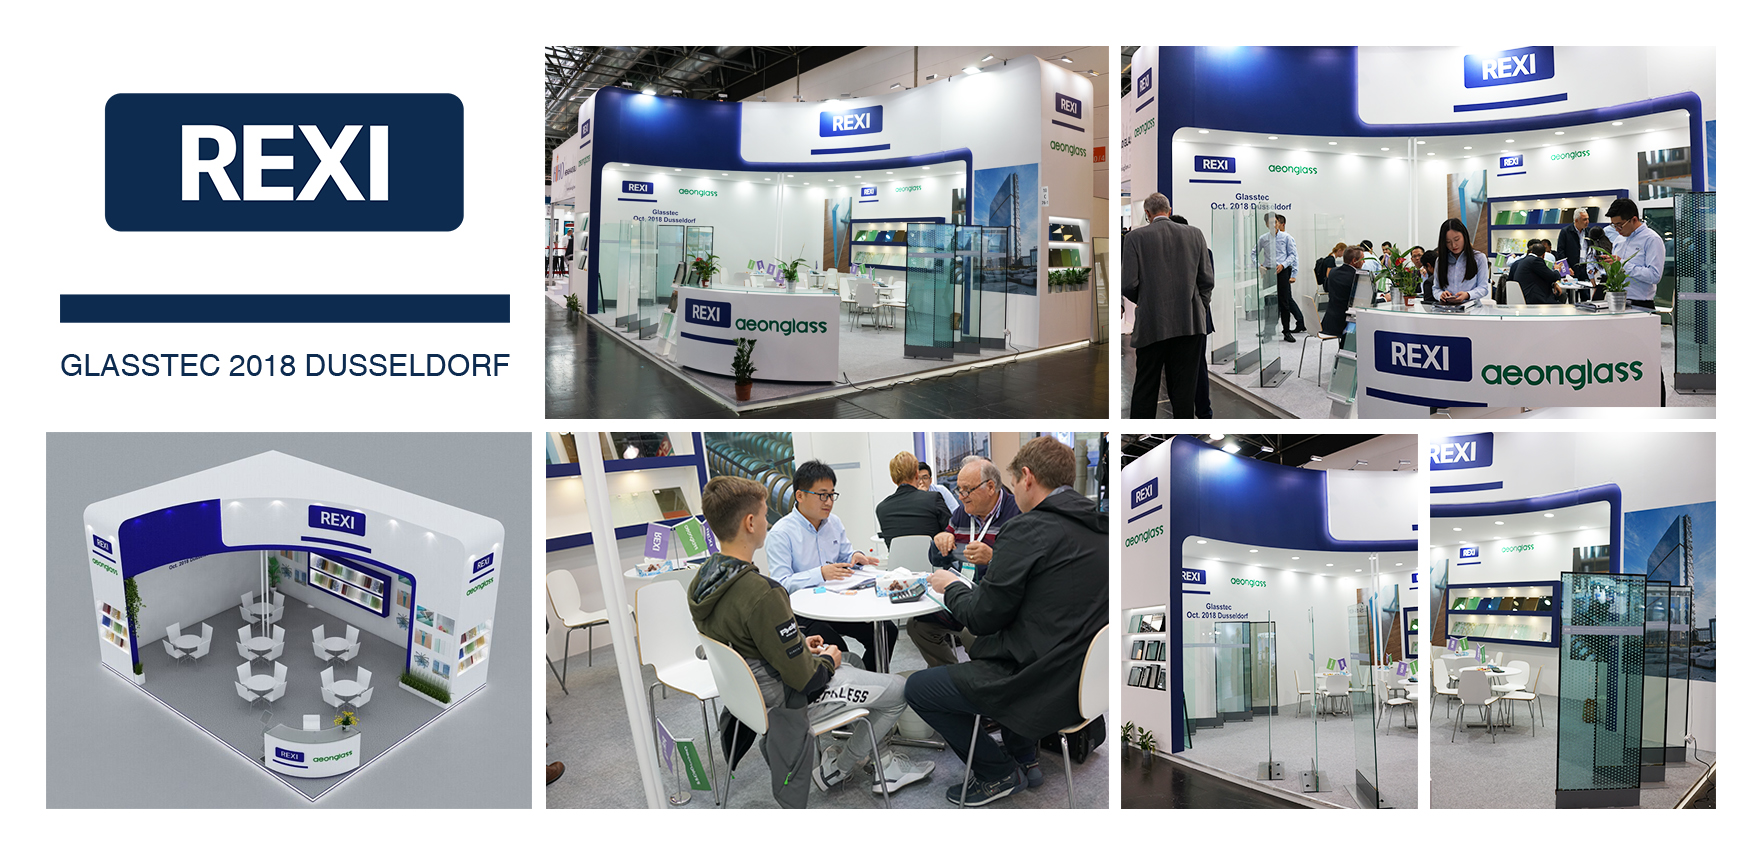 REXI Participated in the 25th German Düsseldorf GlassTec